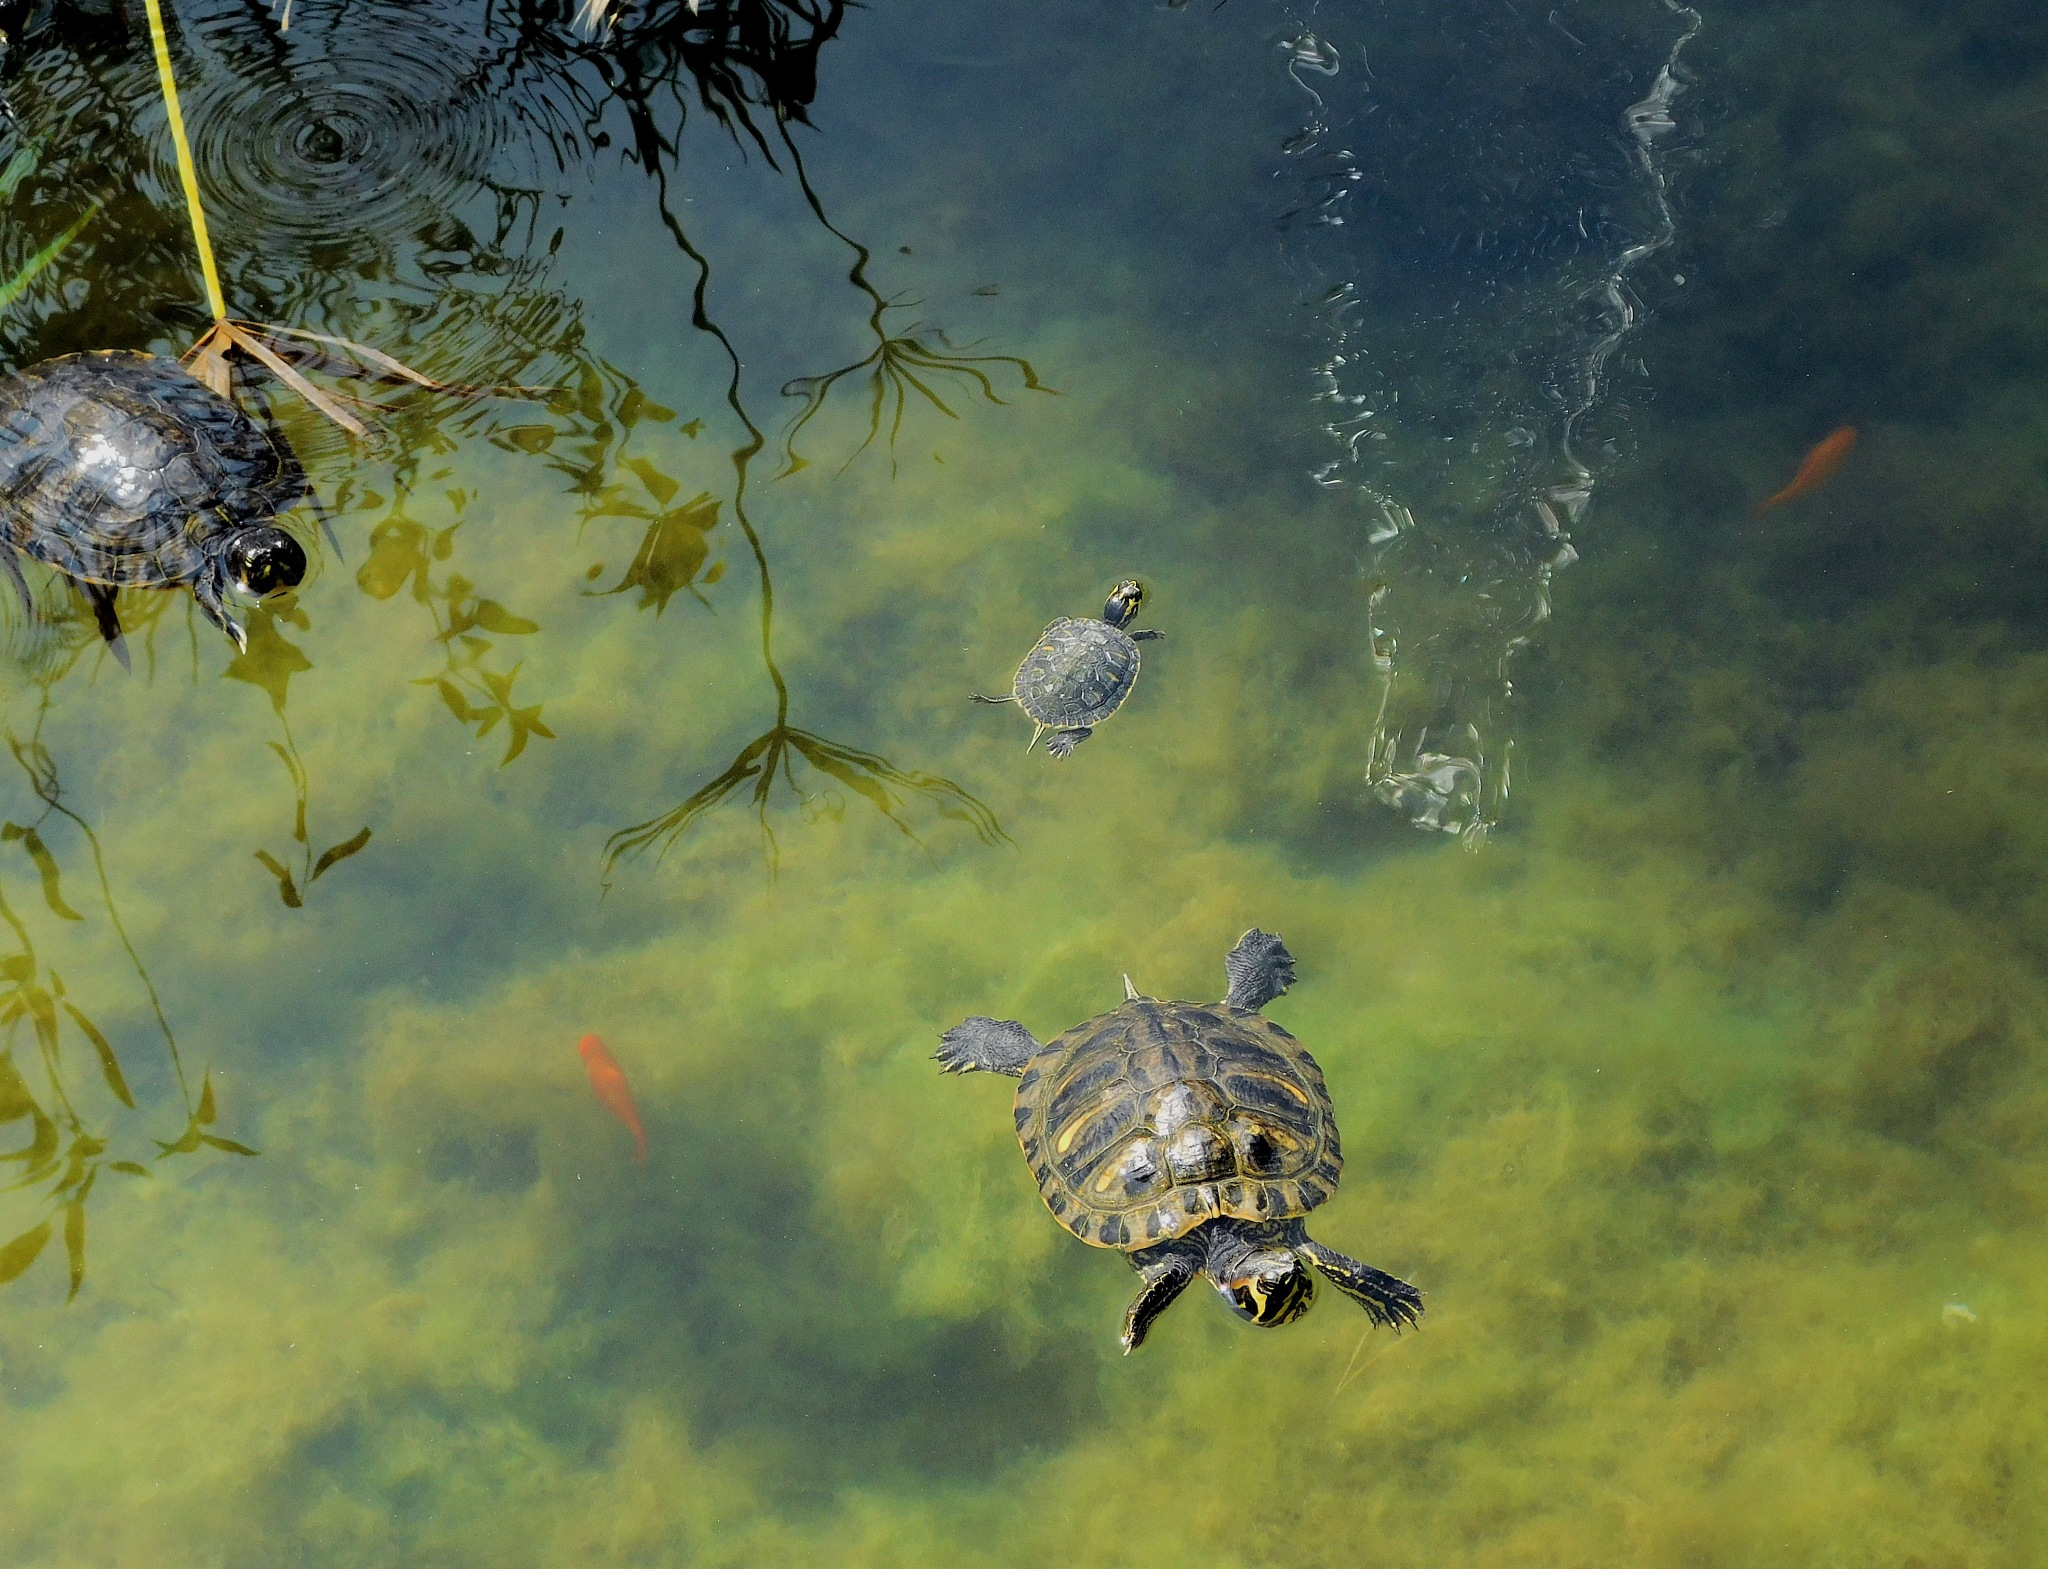 La Familia Tortuga i els Peixets - The Turtle Family and the Little Fishes by Mister Arnauna & Gatto Giuggiolone